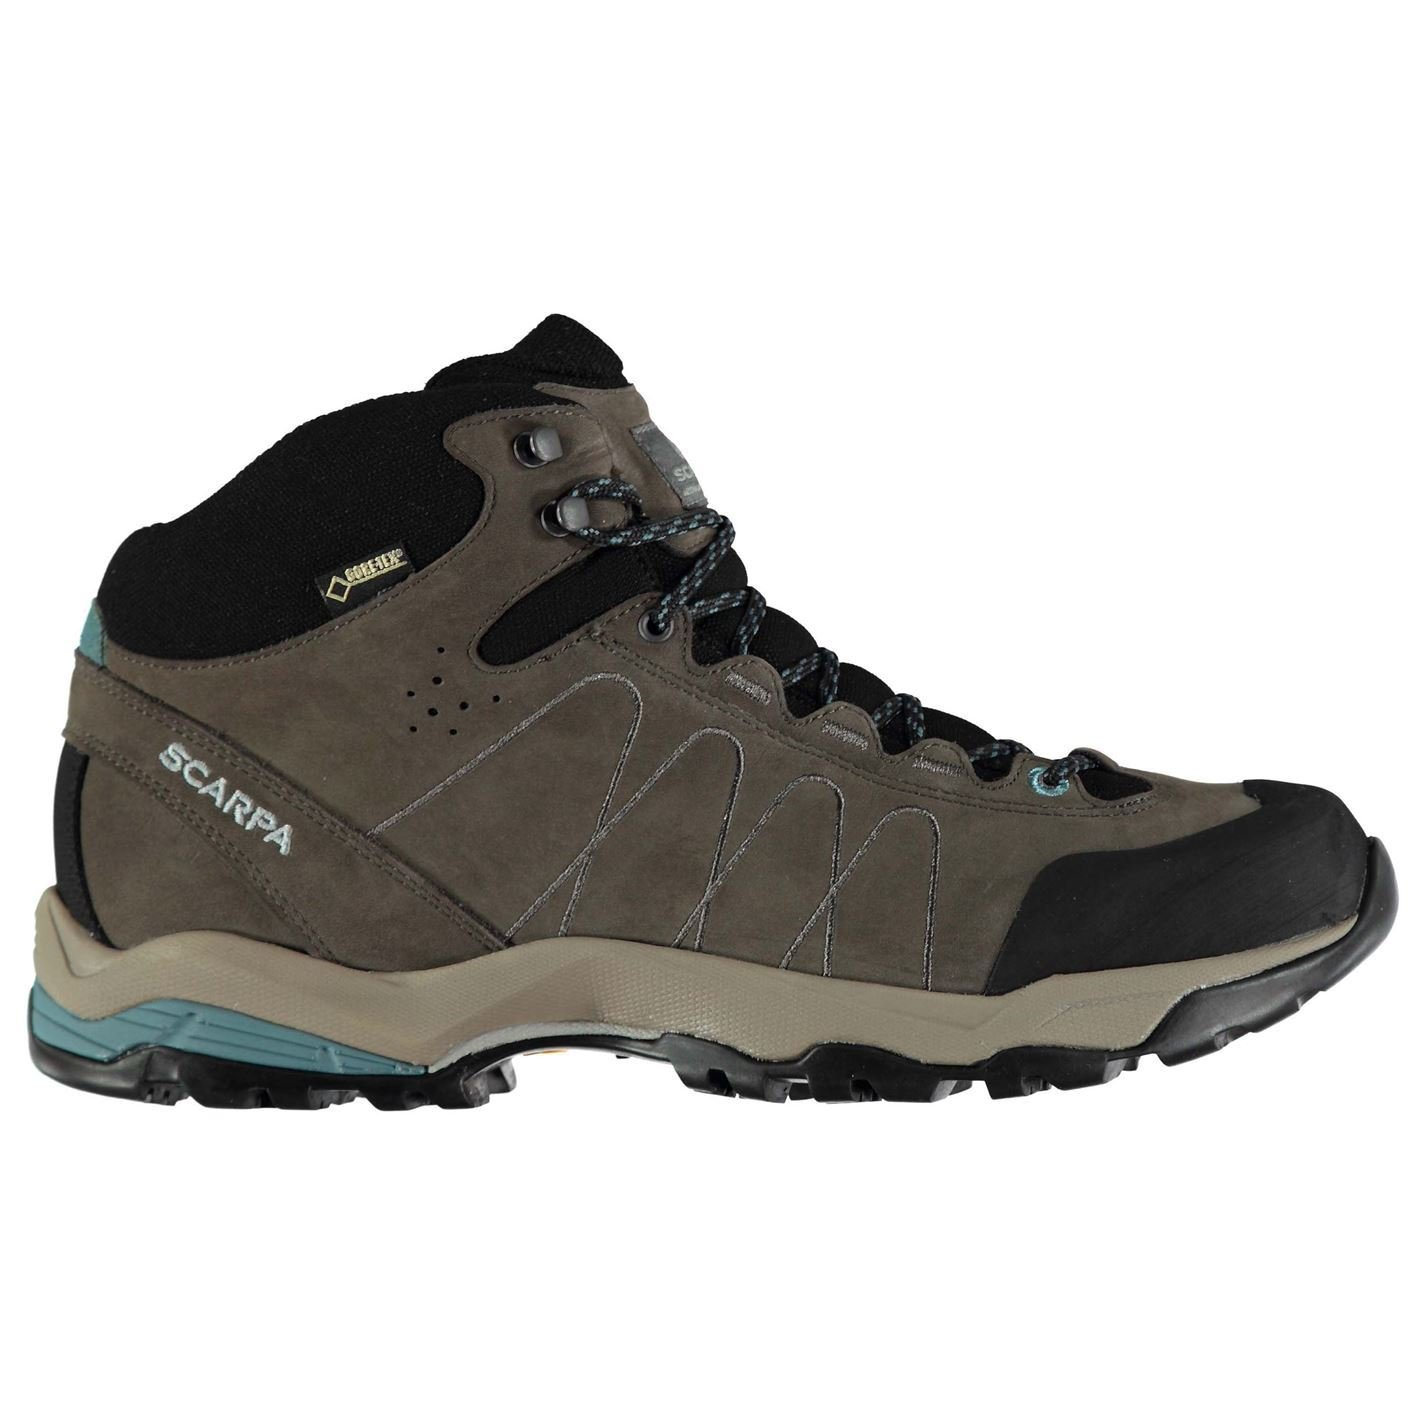 Scarpa Womens Moraine GTX Walking Shoes Boots Lace Up Padded Ankle Collar Tongue